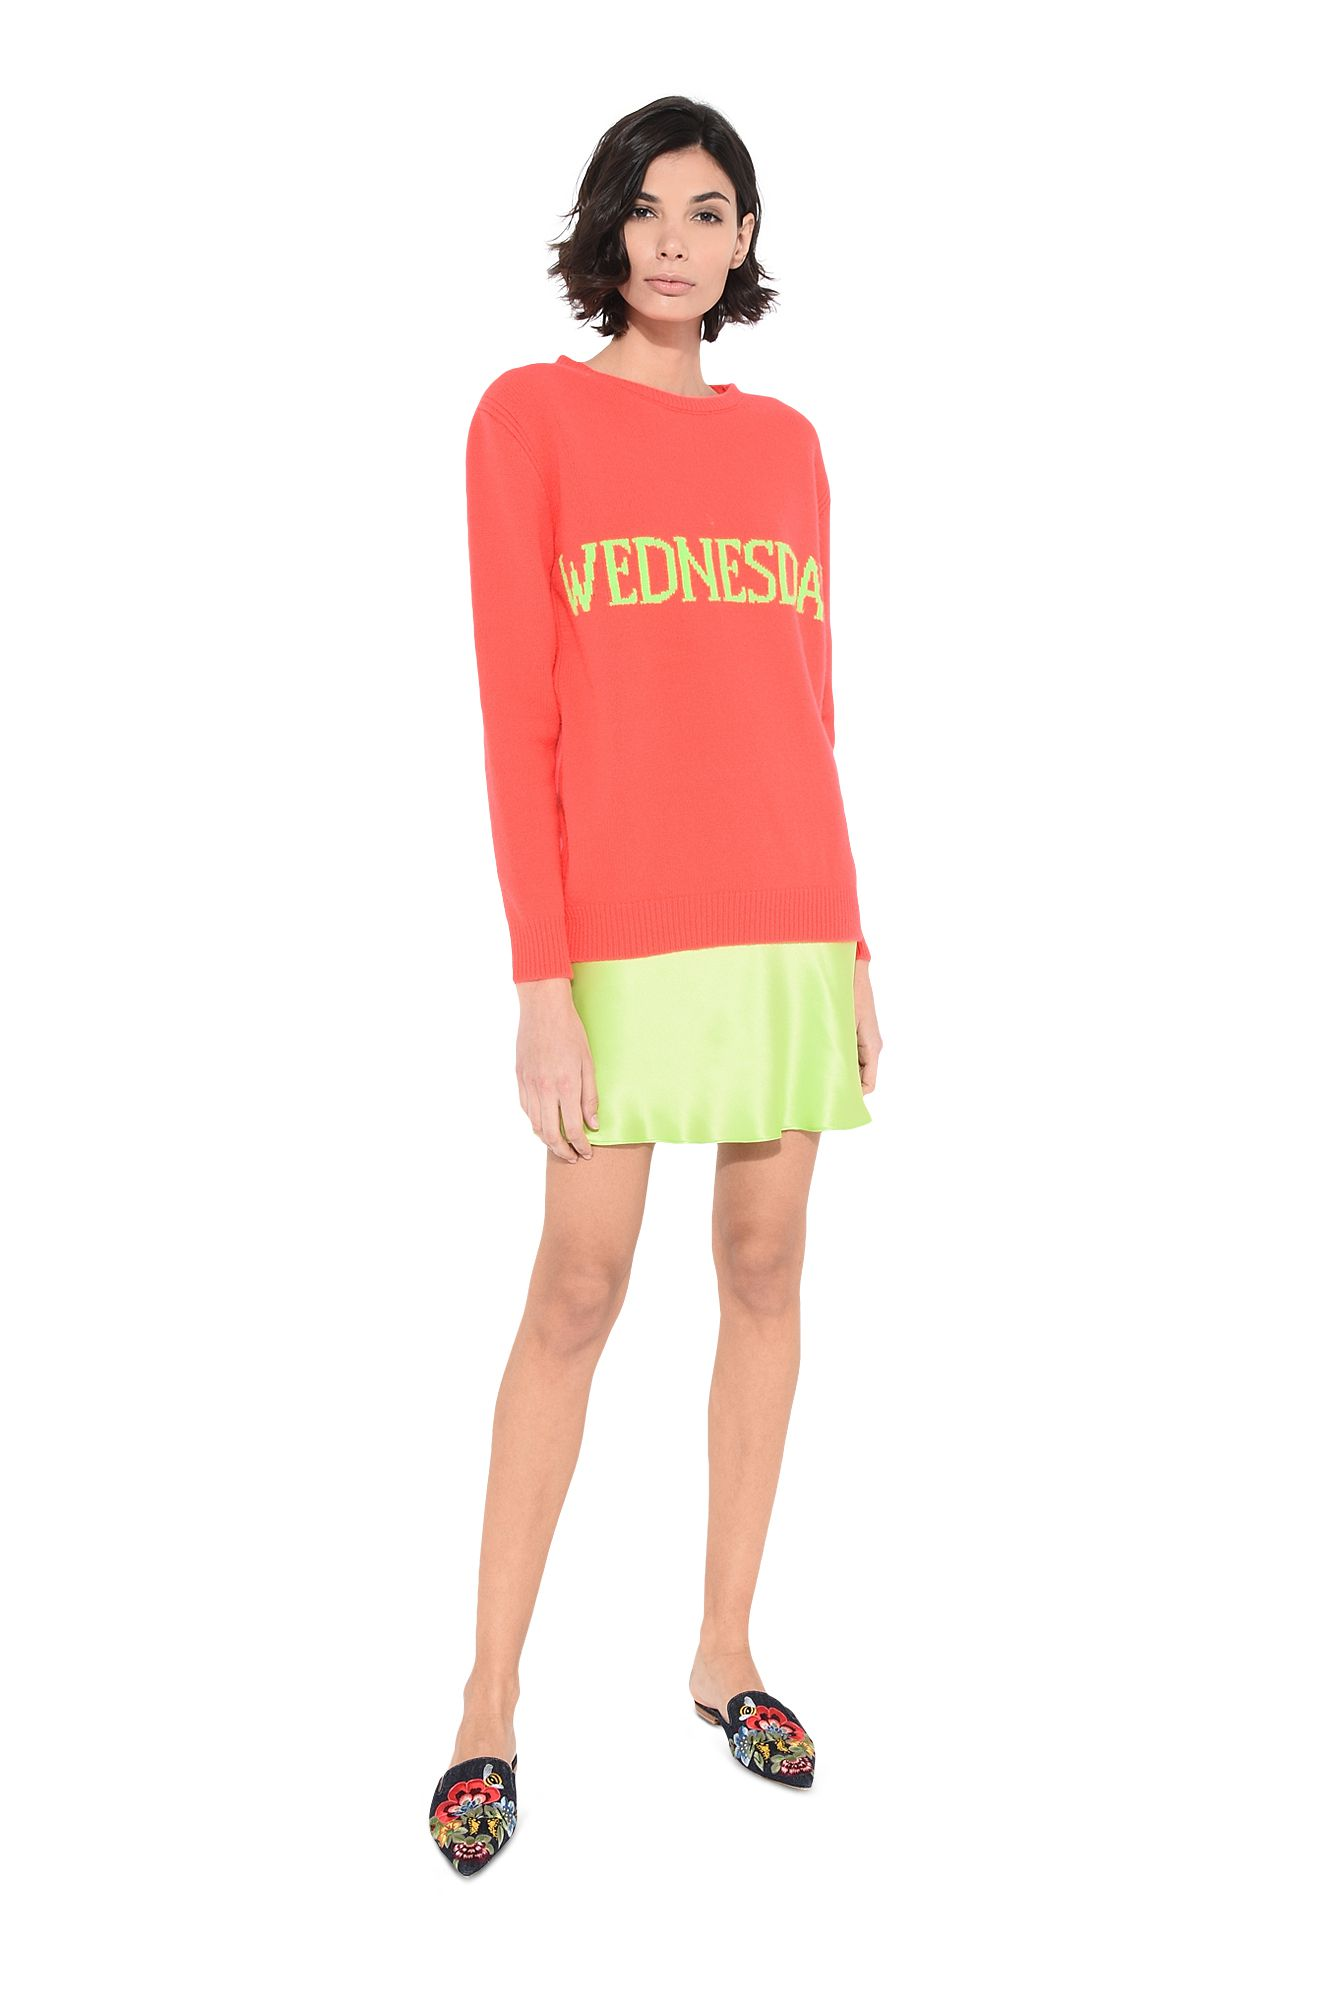 Wednesday fluo sweater